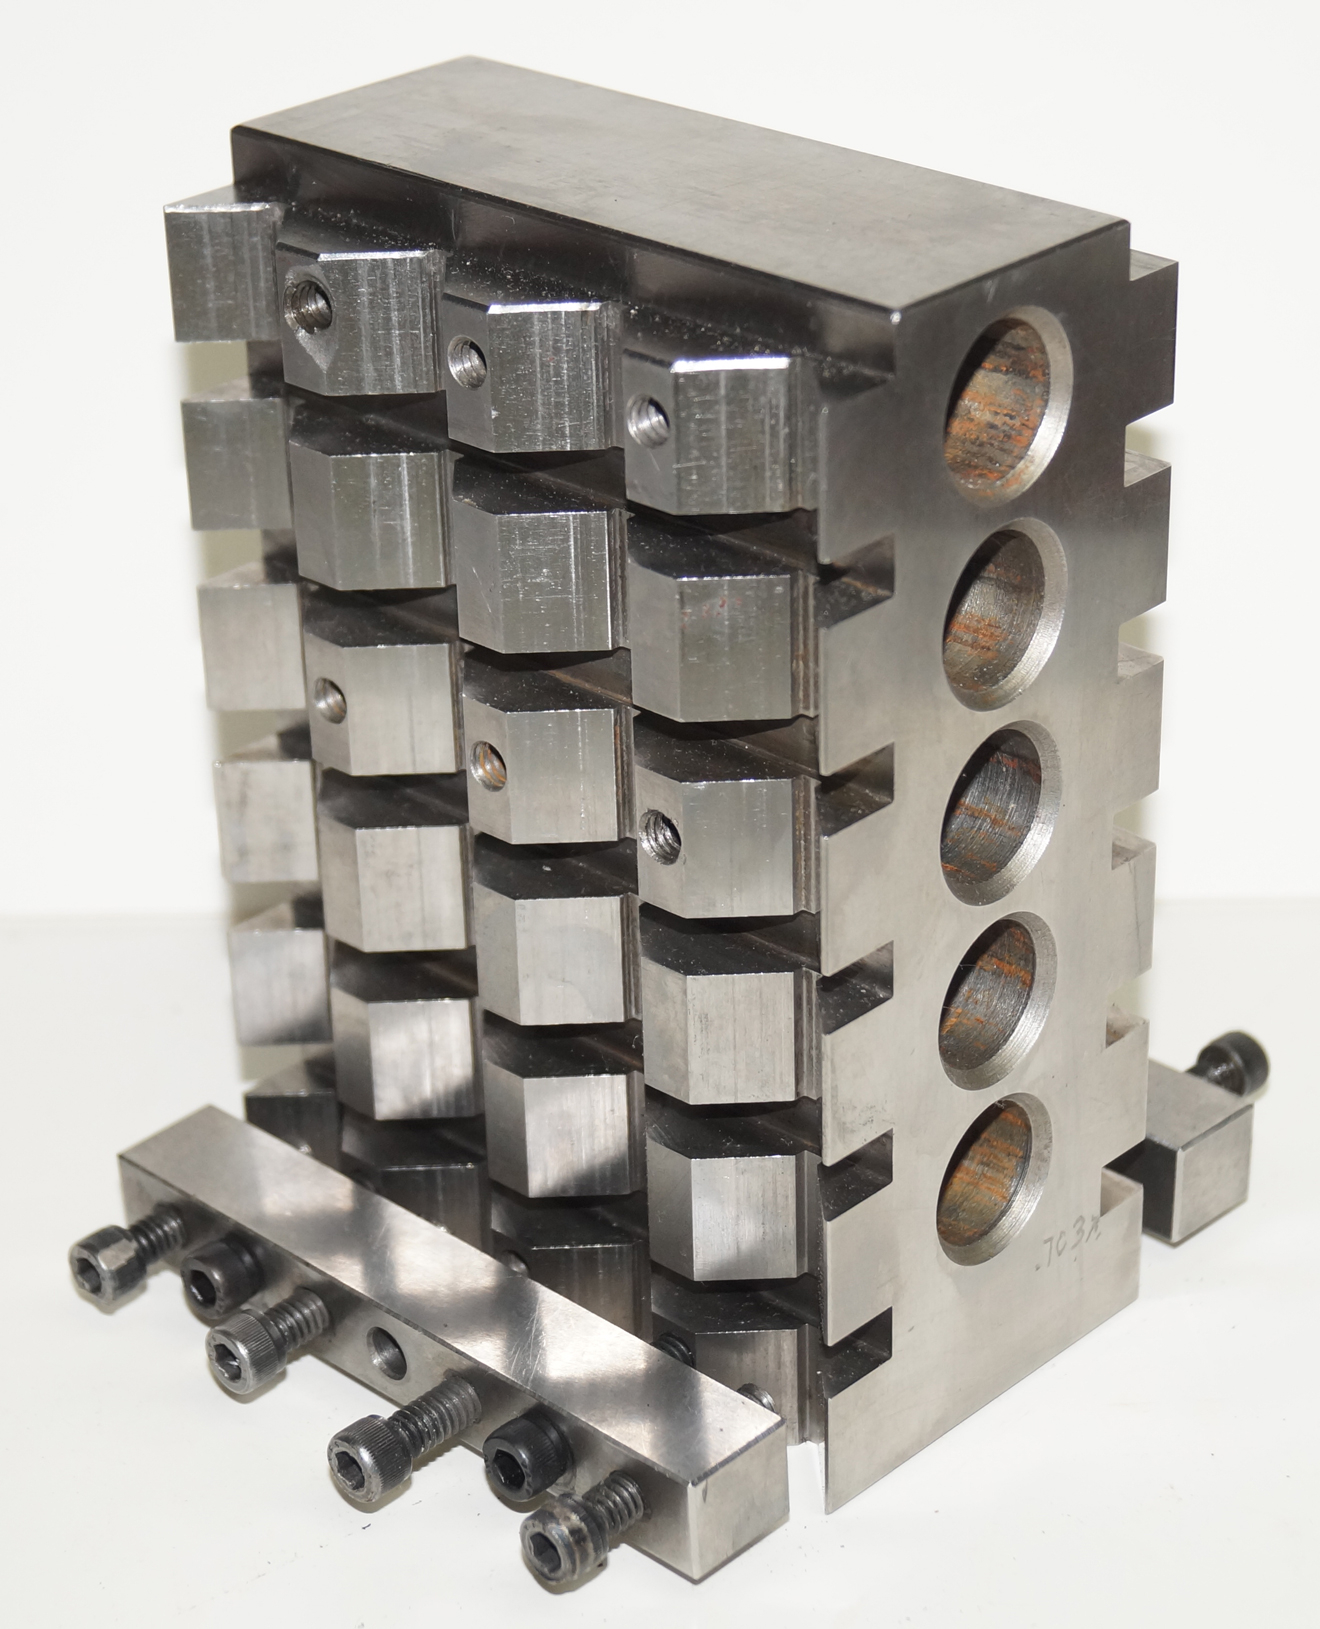 V-Block Tombstone Workholding Jig for Machines